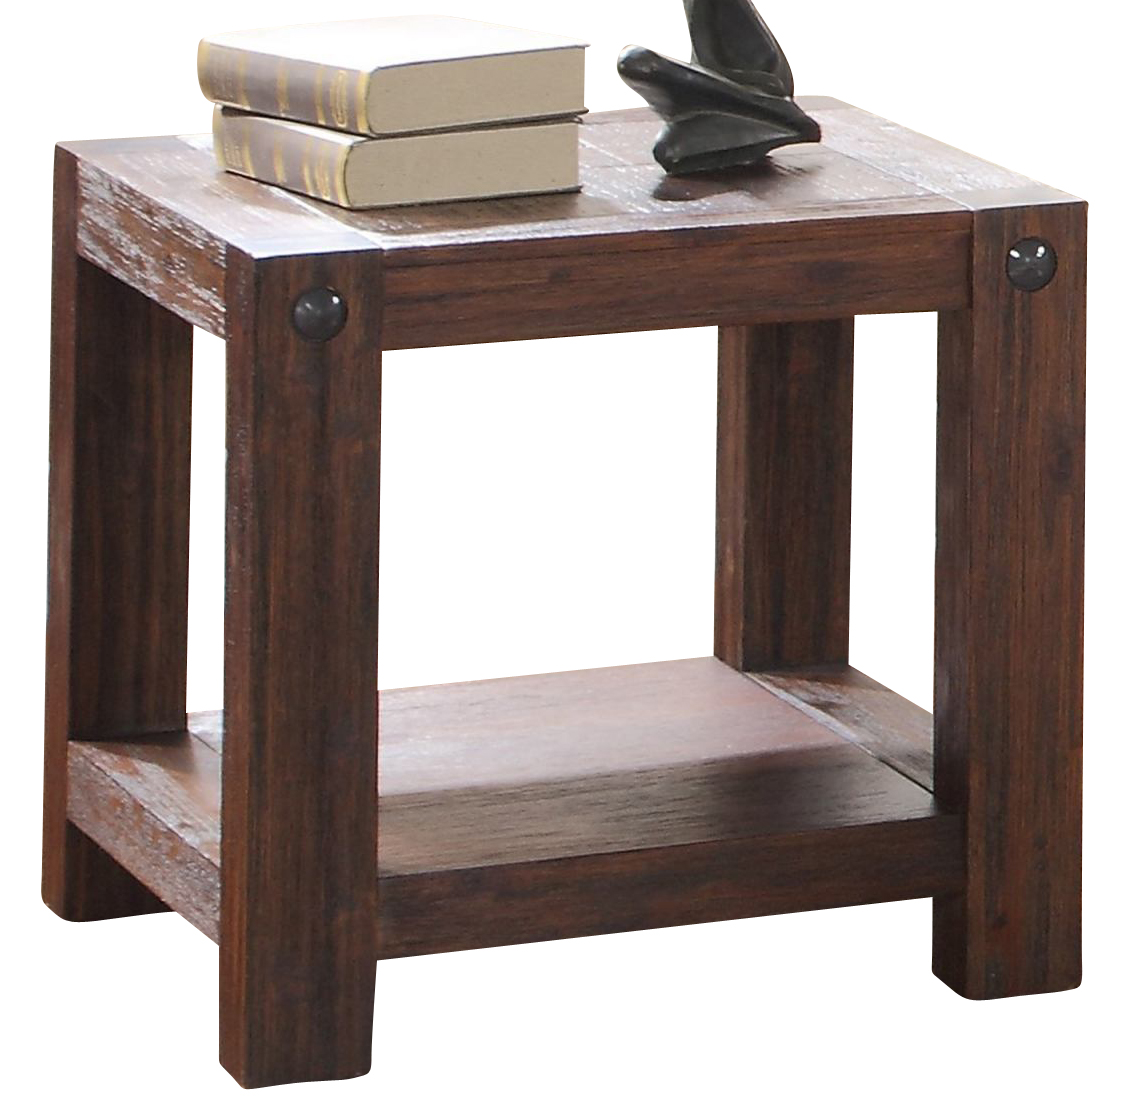 New Classic Furniture Fairway End Table In Distressed